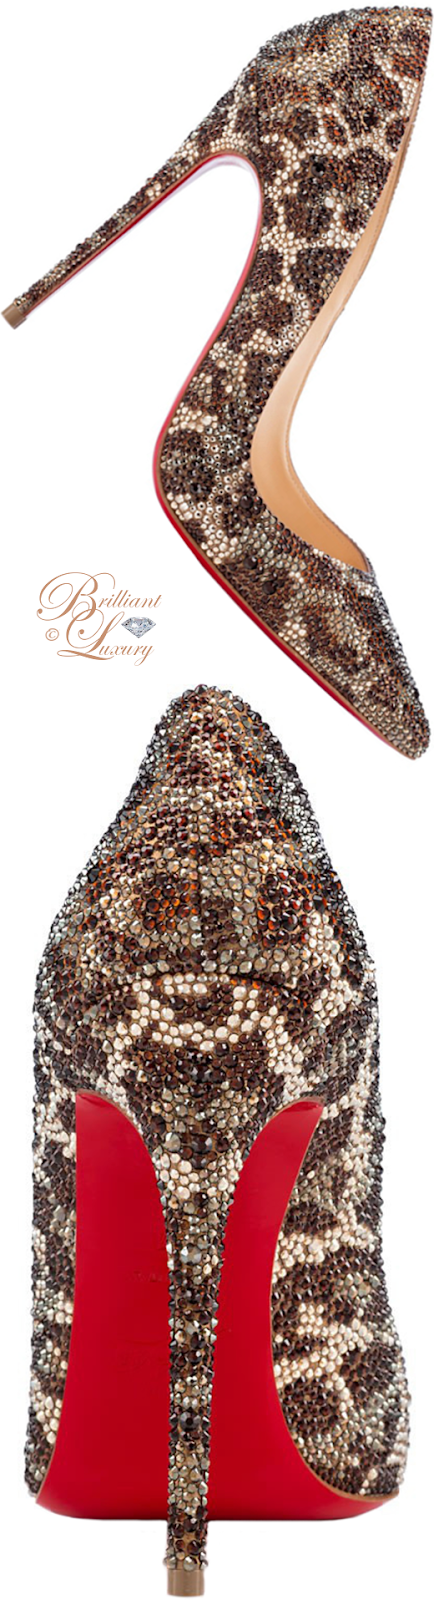 Brilliant Luxury ♦ Christian Louboutin So Kate Strass pump